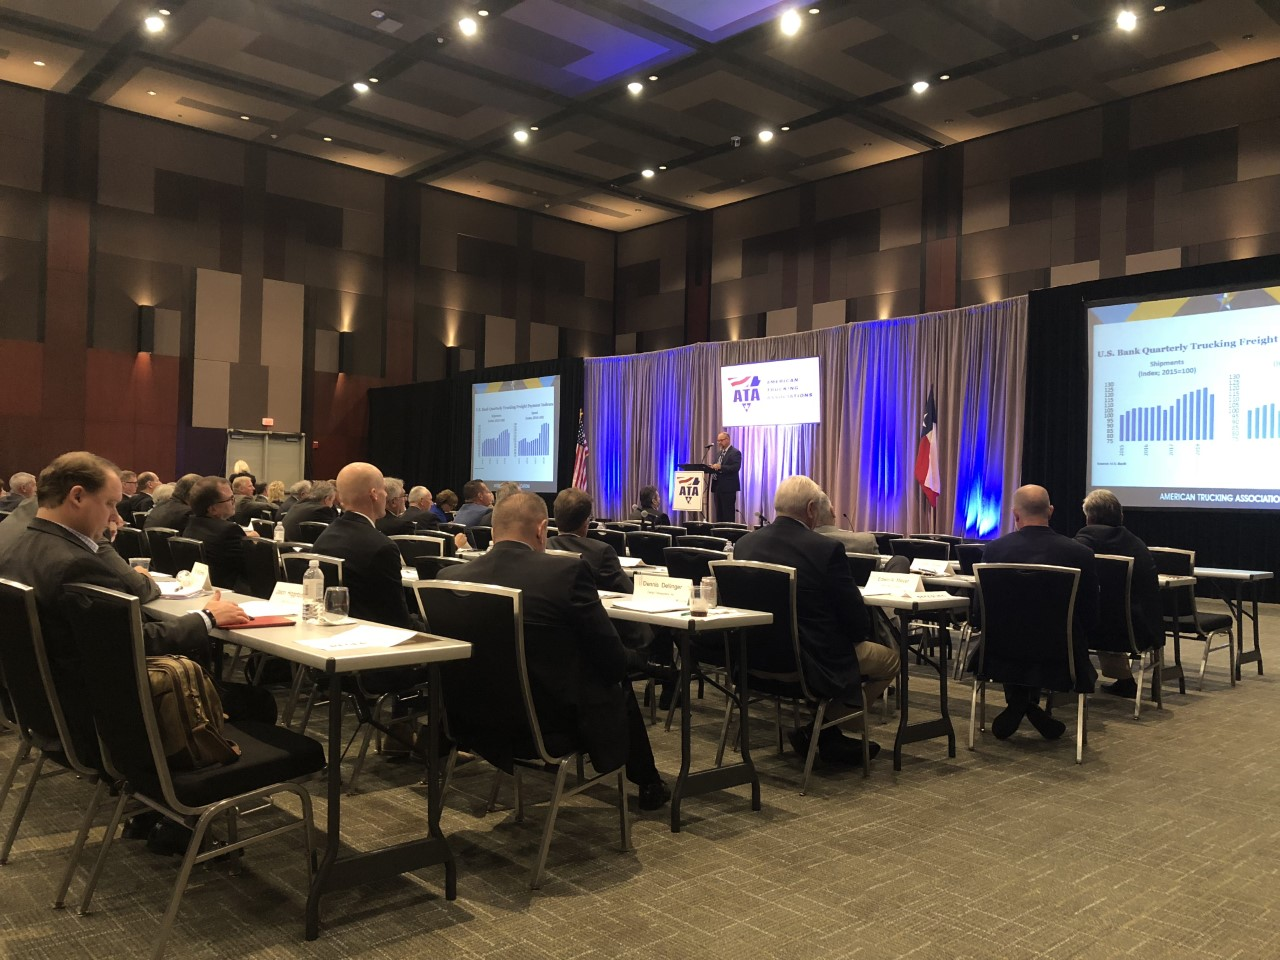 Don't Worry About the Economy, Says ATA's Chief Economist